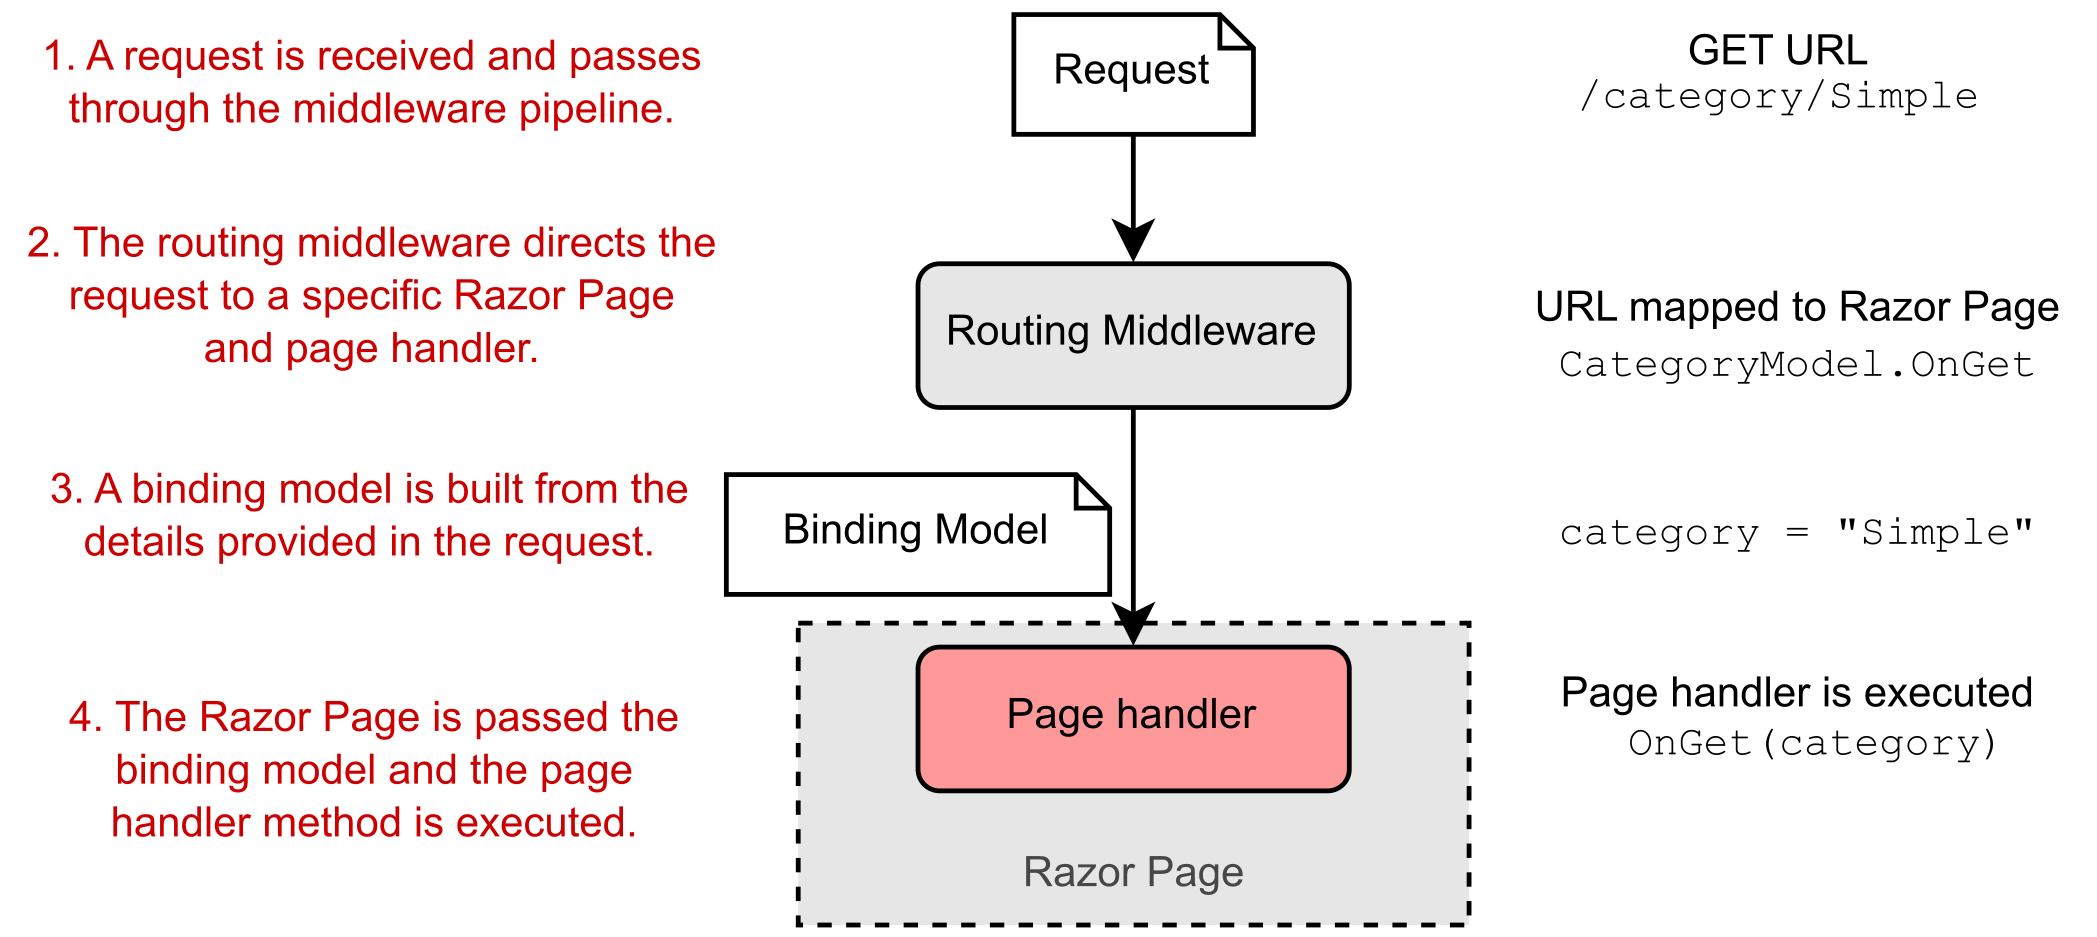 Image showing a request being routed to a Razor Page handler.